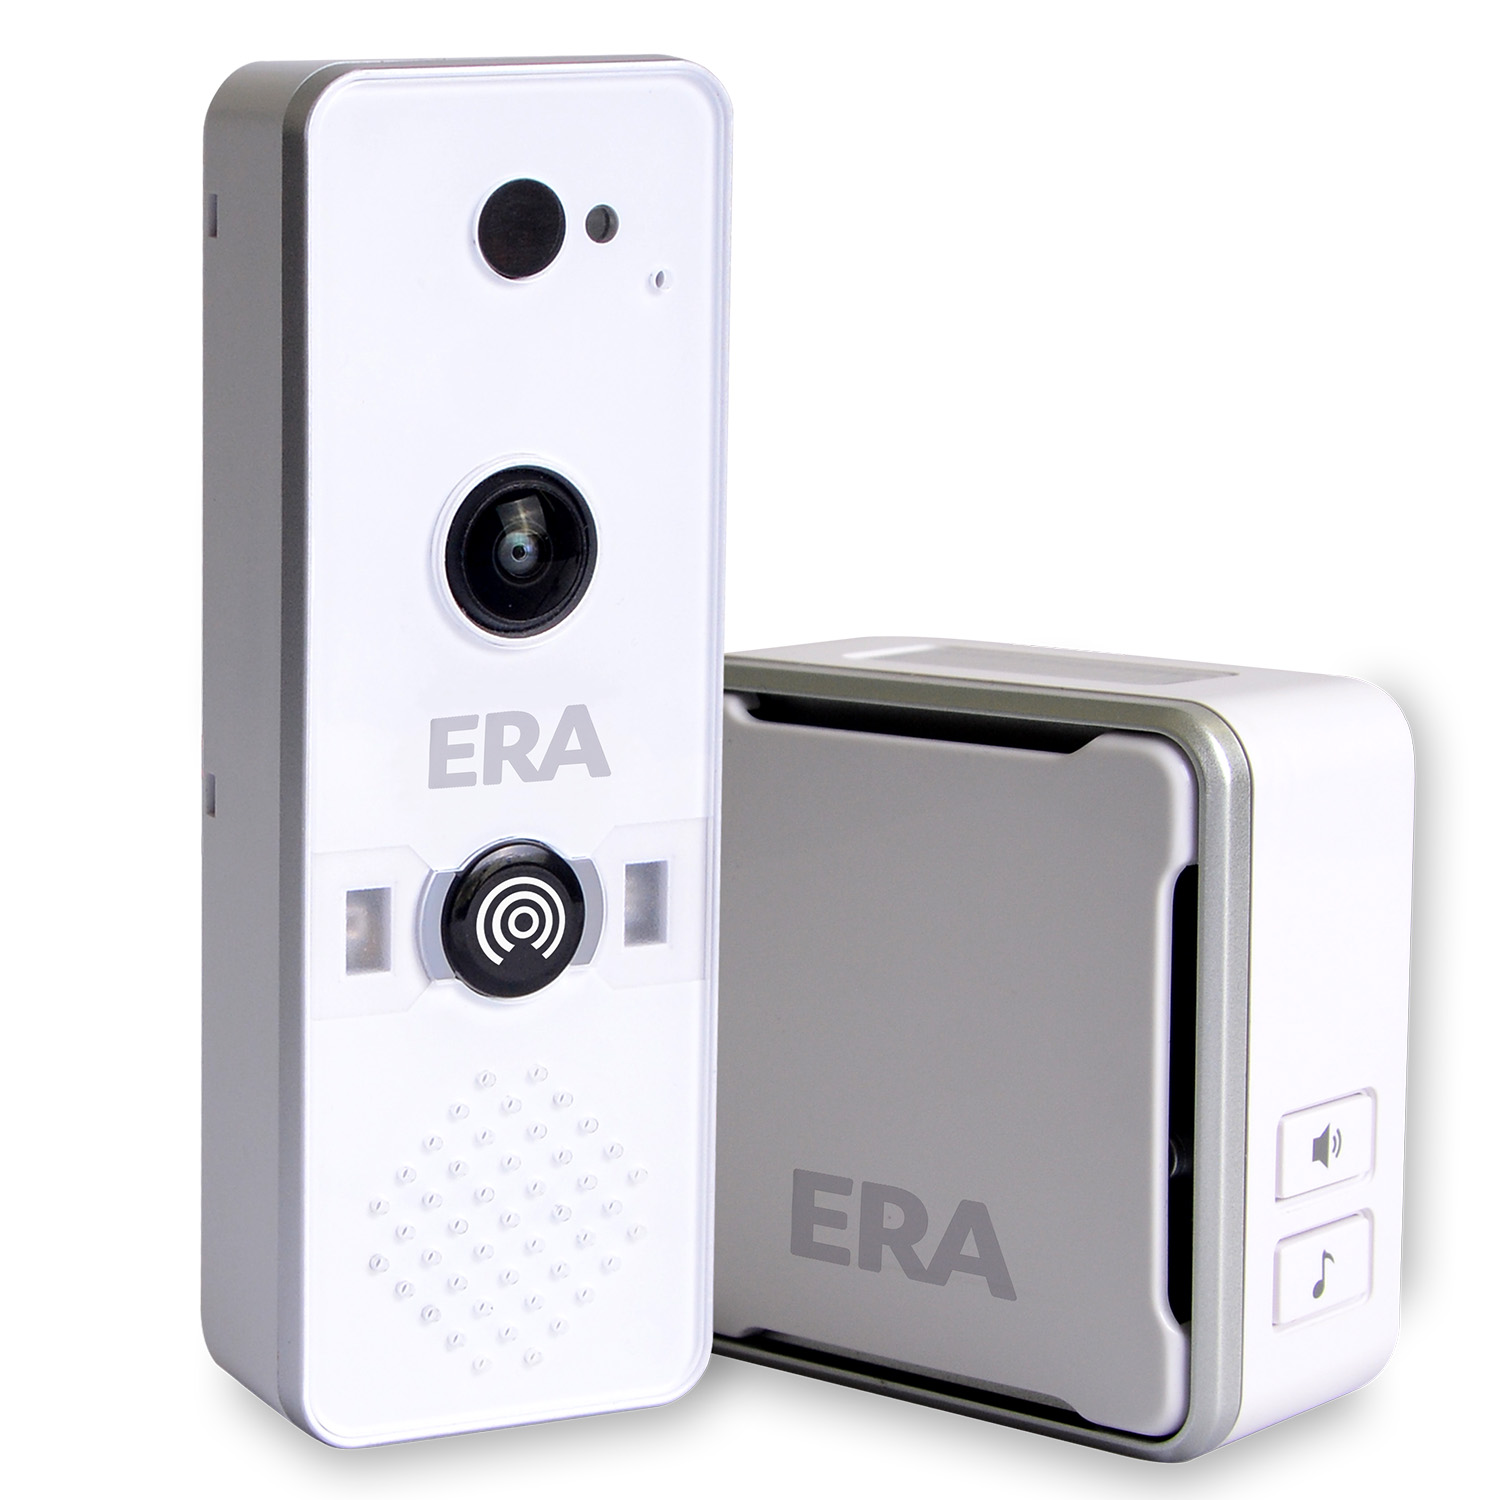 ERA DoorCam - Smart Home WiFi Video Doorbell